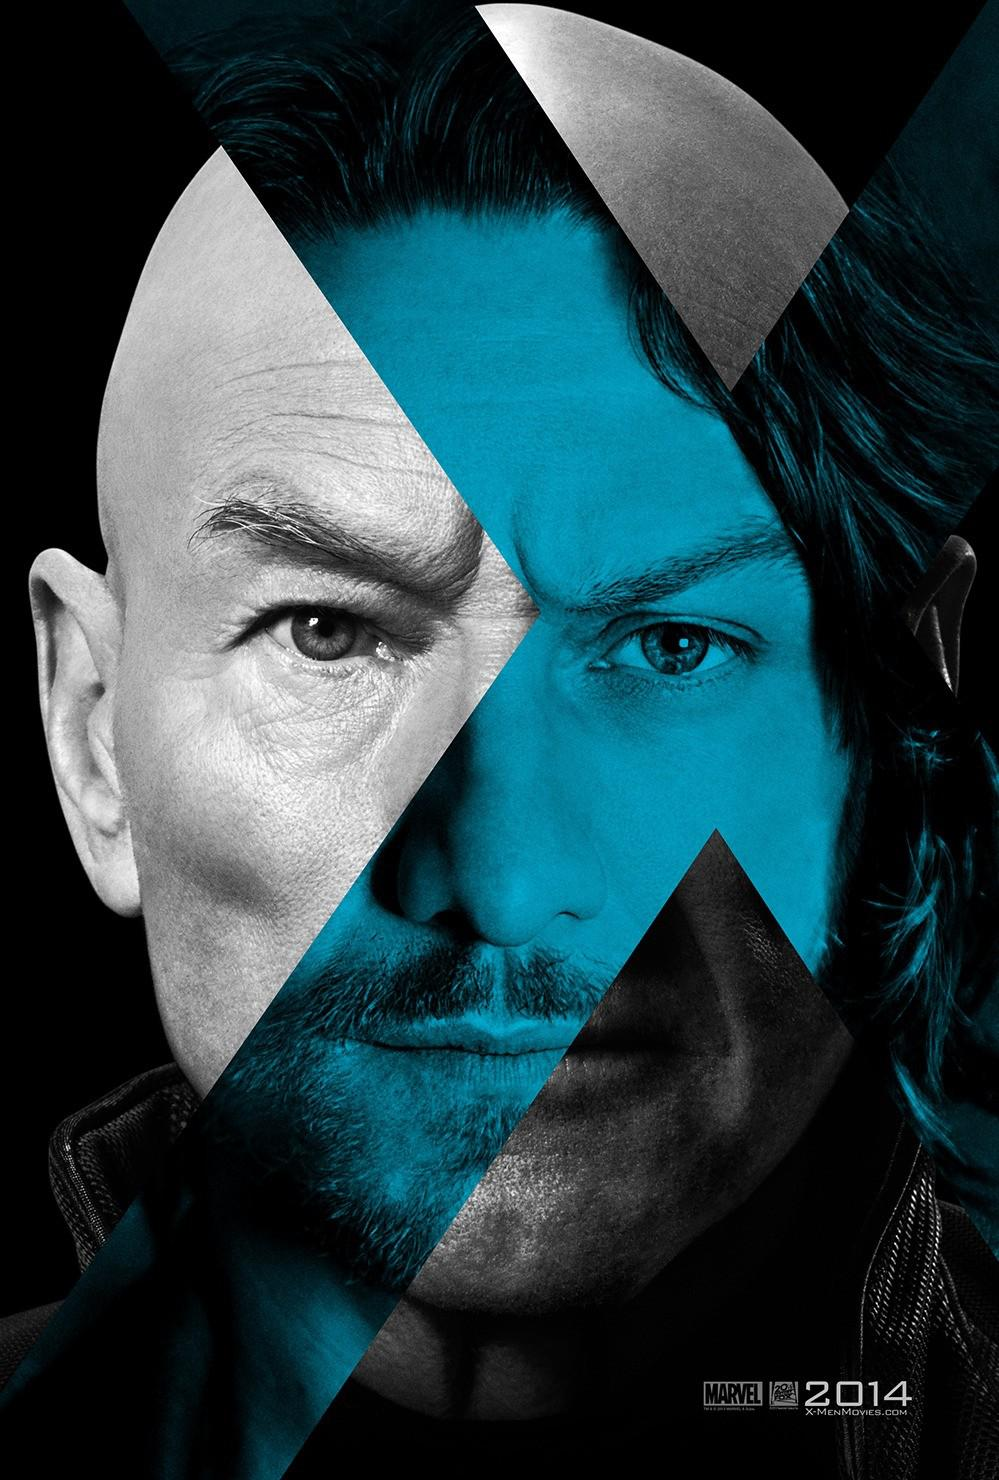 X-Men 6 - X Men Giorni di un Futuro Passato - Days of Future Past - young Professor Xavier (James McAvoy) - old Professor Xavier (Patrick Stewart)